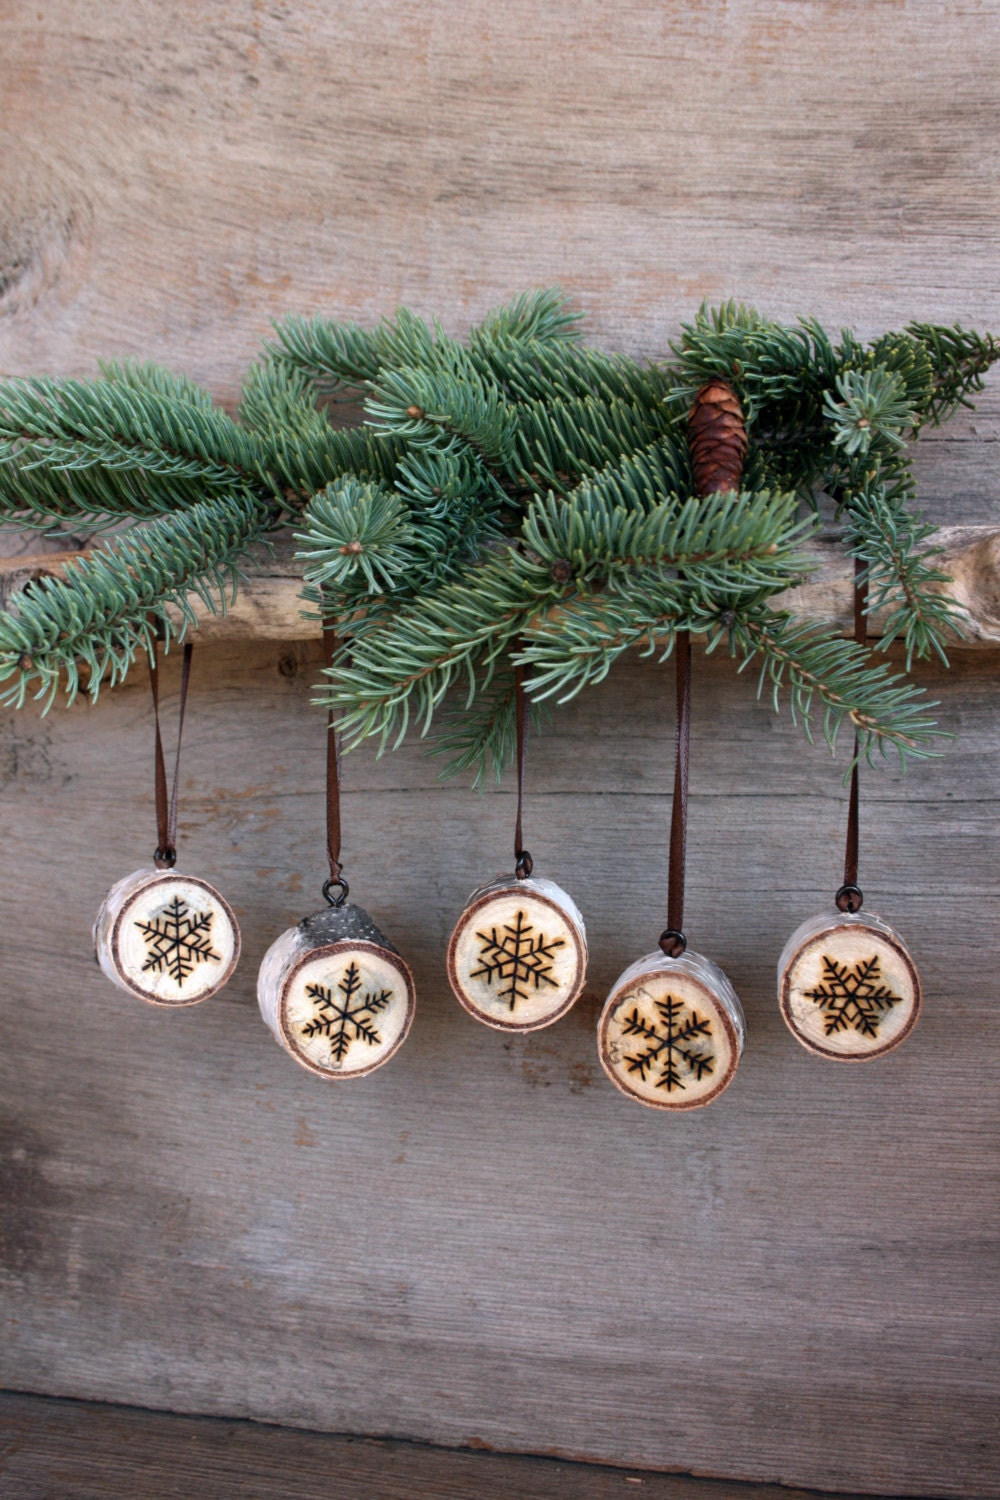 Snowflake ornaments set of 5 wood burning on birch for Wood decoration patterns